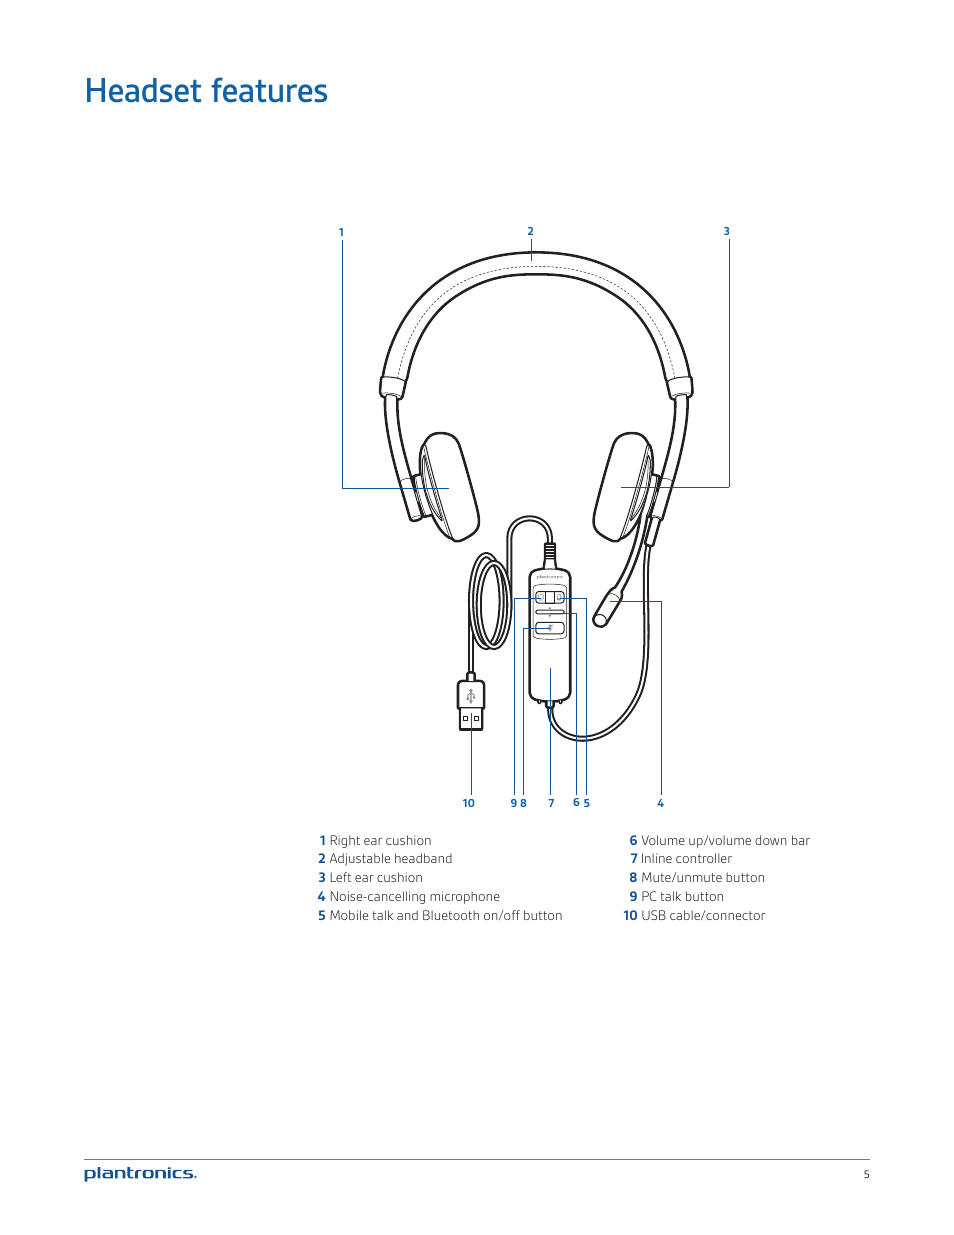 headset features